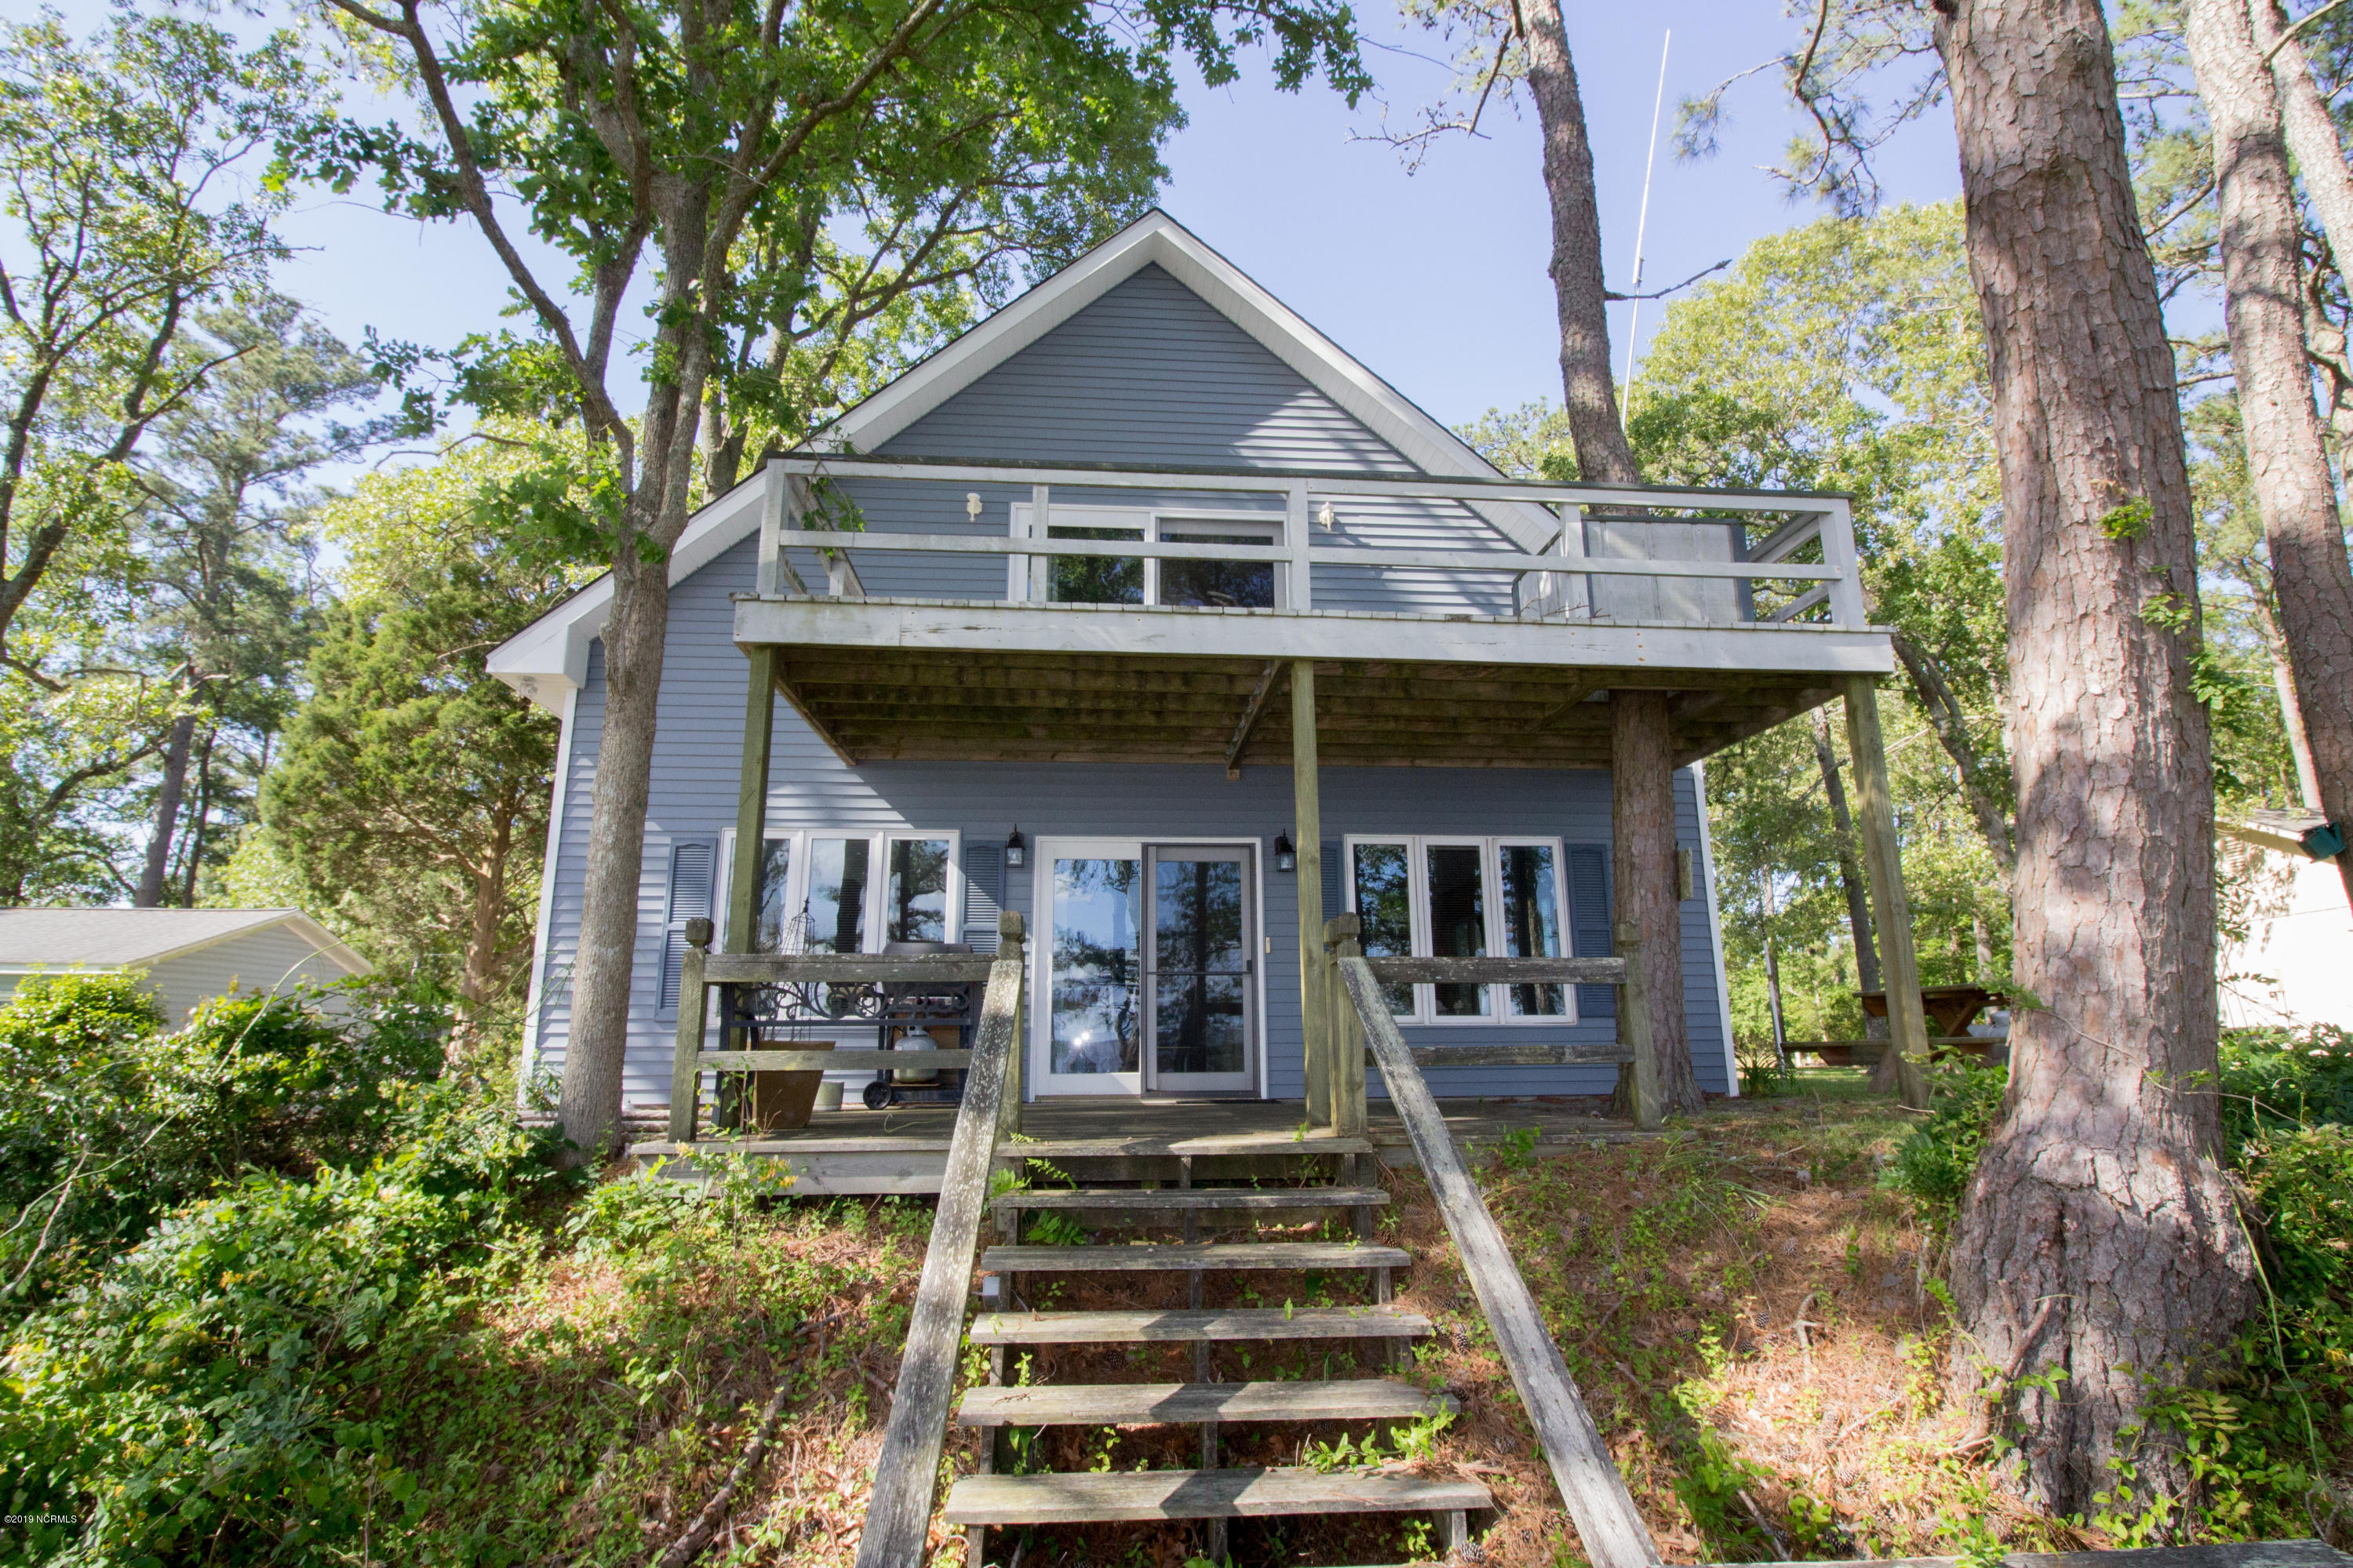 2271 Old Pamlico Beach Road, Belhaven, North Carolina, 4 Bedrooms Bedrooms, 10 Rooms Rooms,2 BathroomsBathrooms,Single family residence,For sale,Old Pamlico Beach,100165133